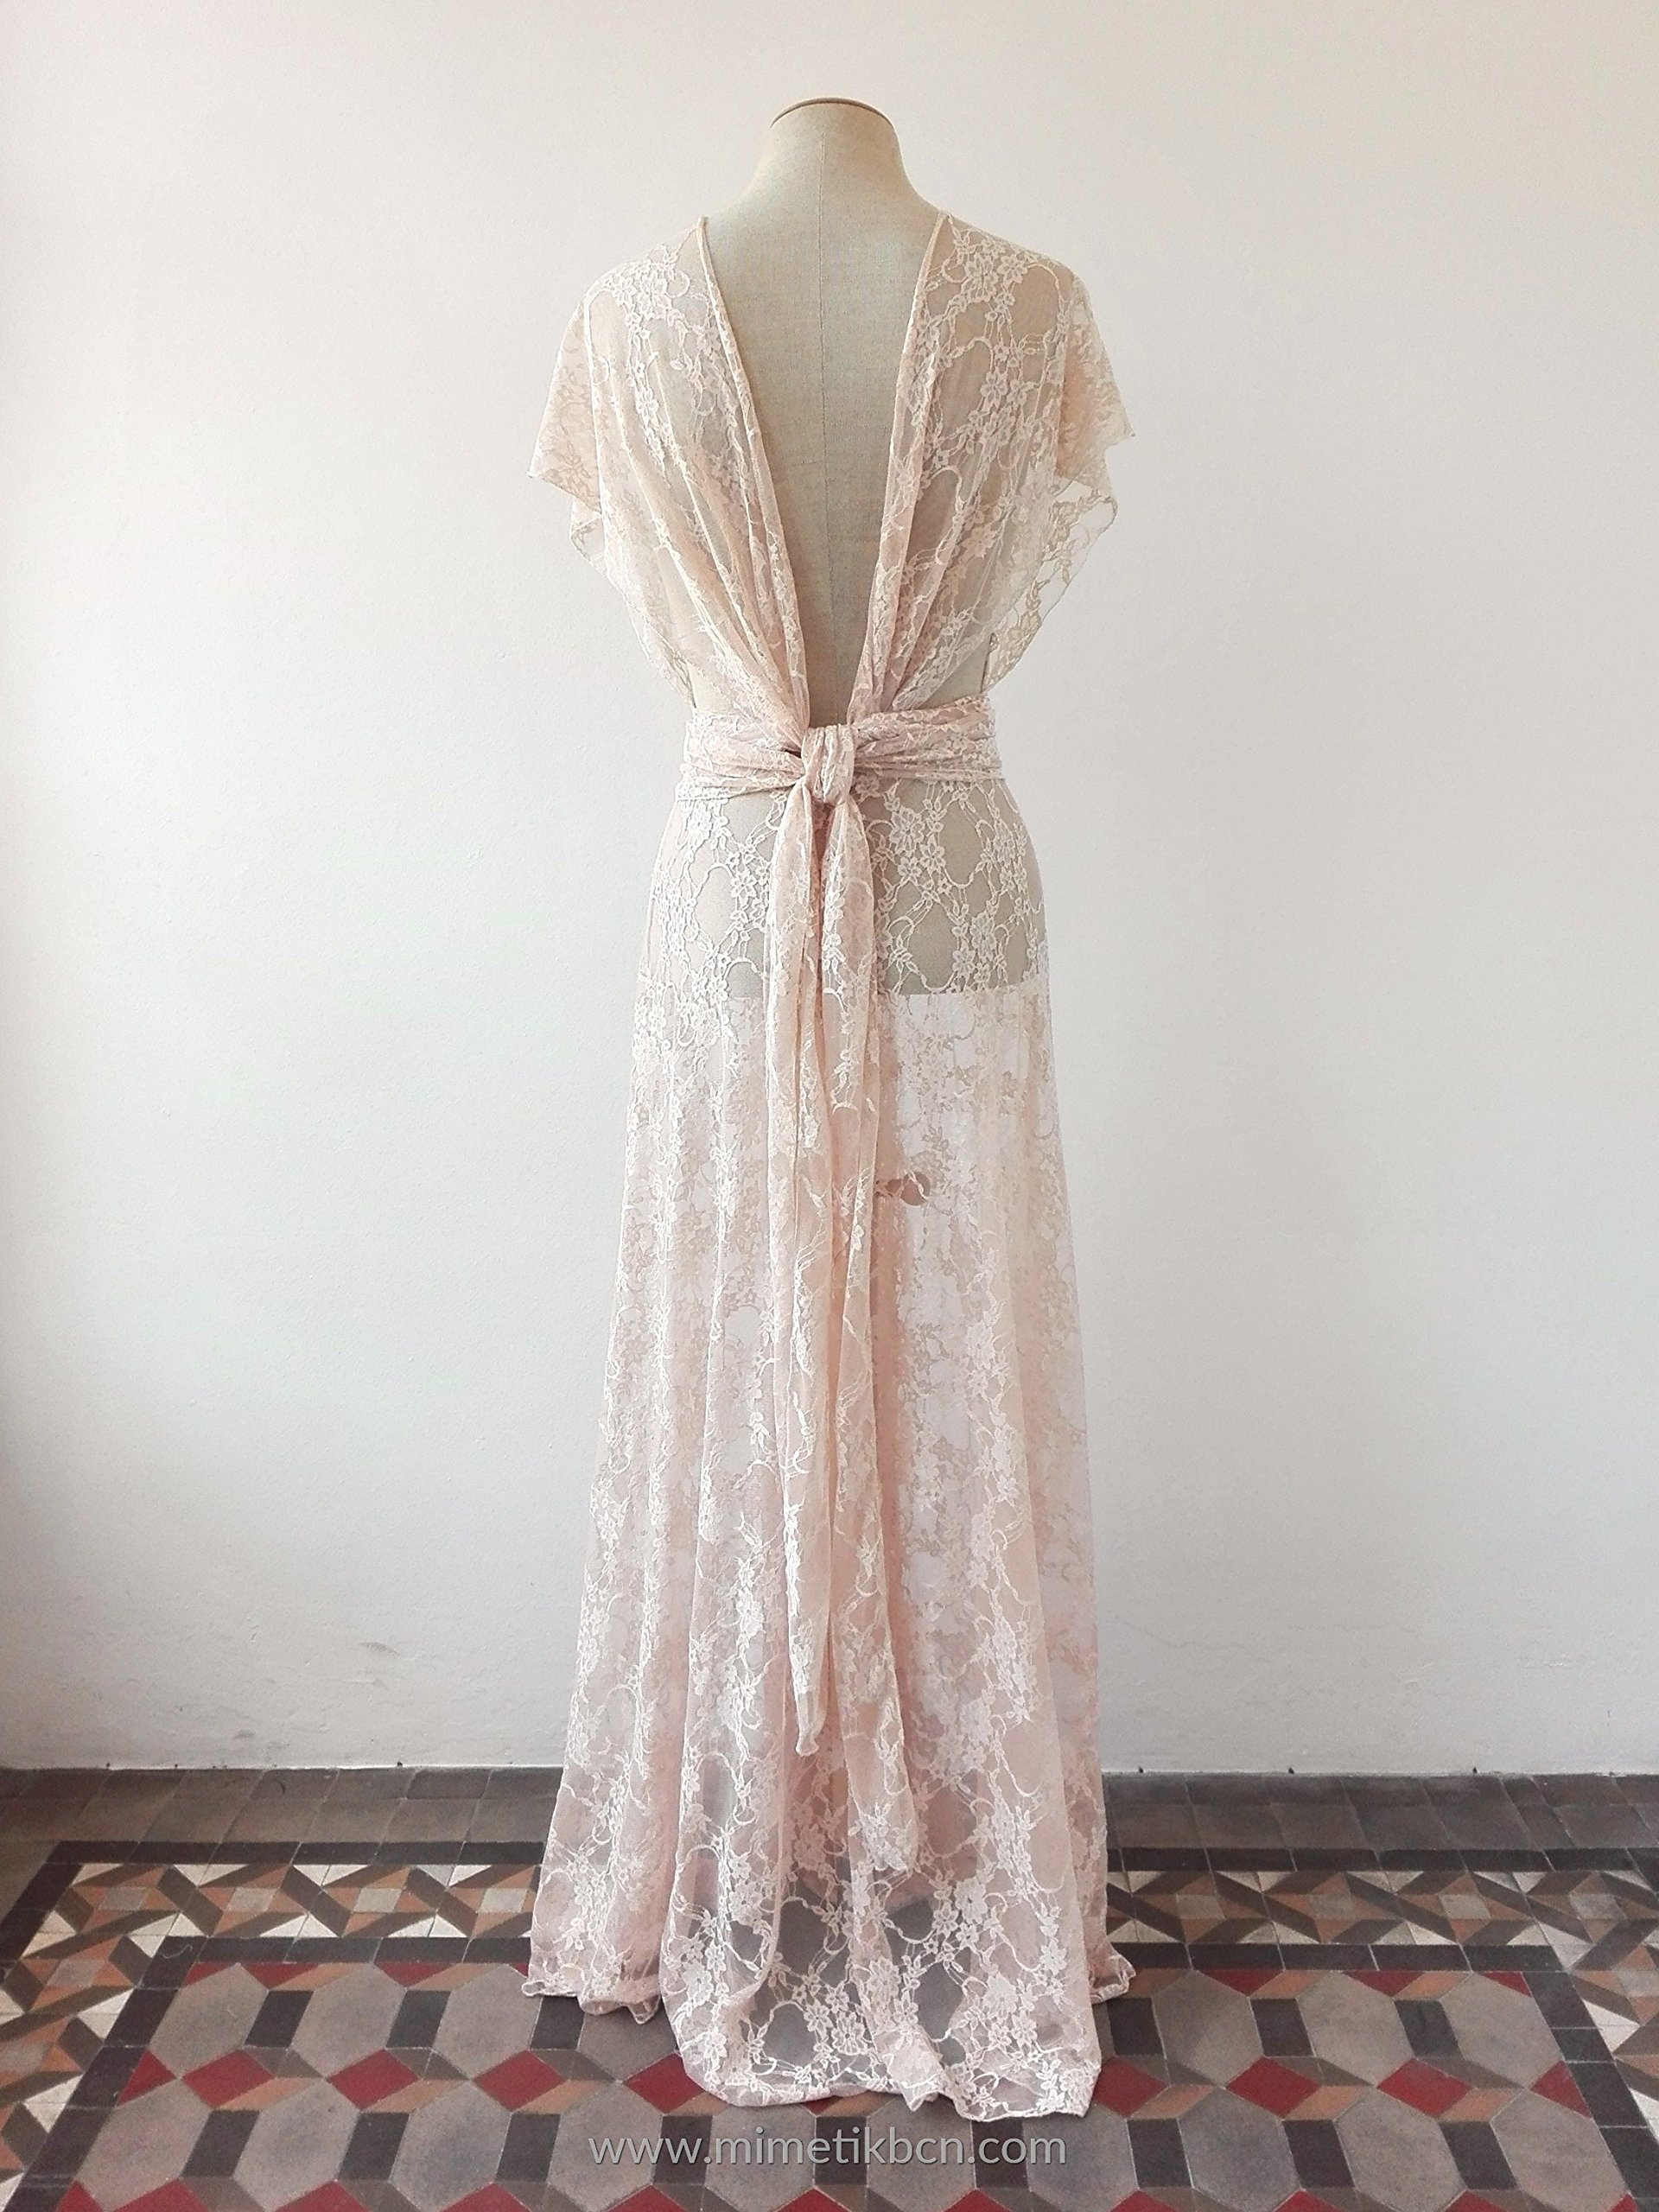 Bohemian separates, lace cover wedding dress, rose quartz lace dress, unlined lace dress, bridal separates, lace overdress wedding, lace dress